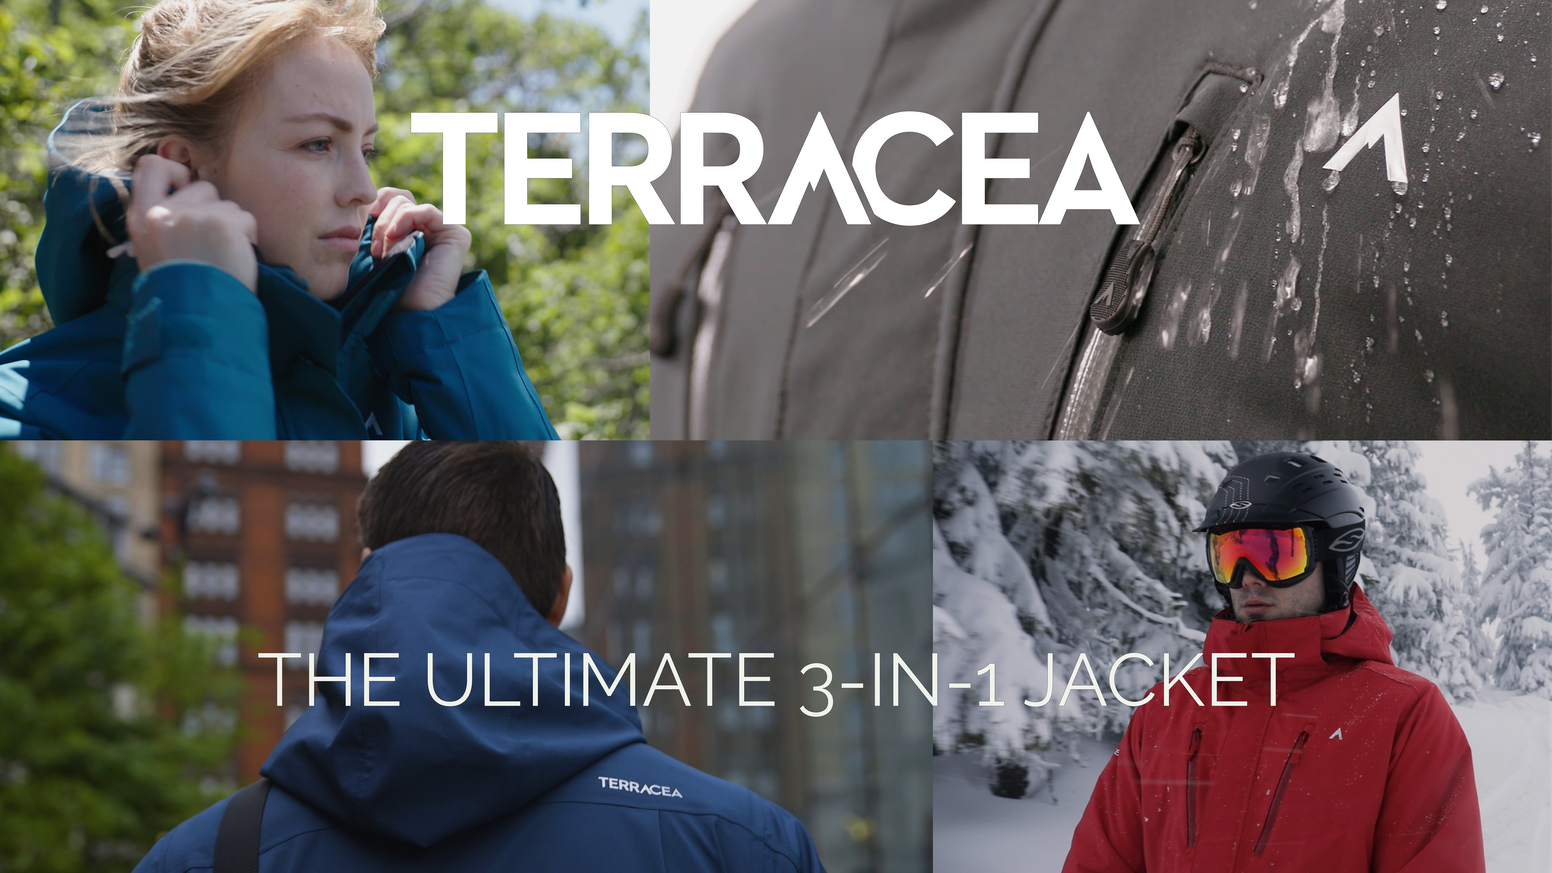 Customizable premium performance 3-in-1 jackets offering unmatched versatility without sacrificing on the fit or function.